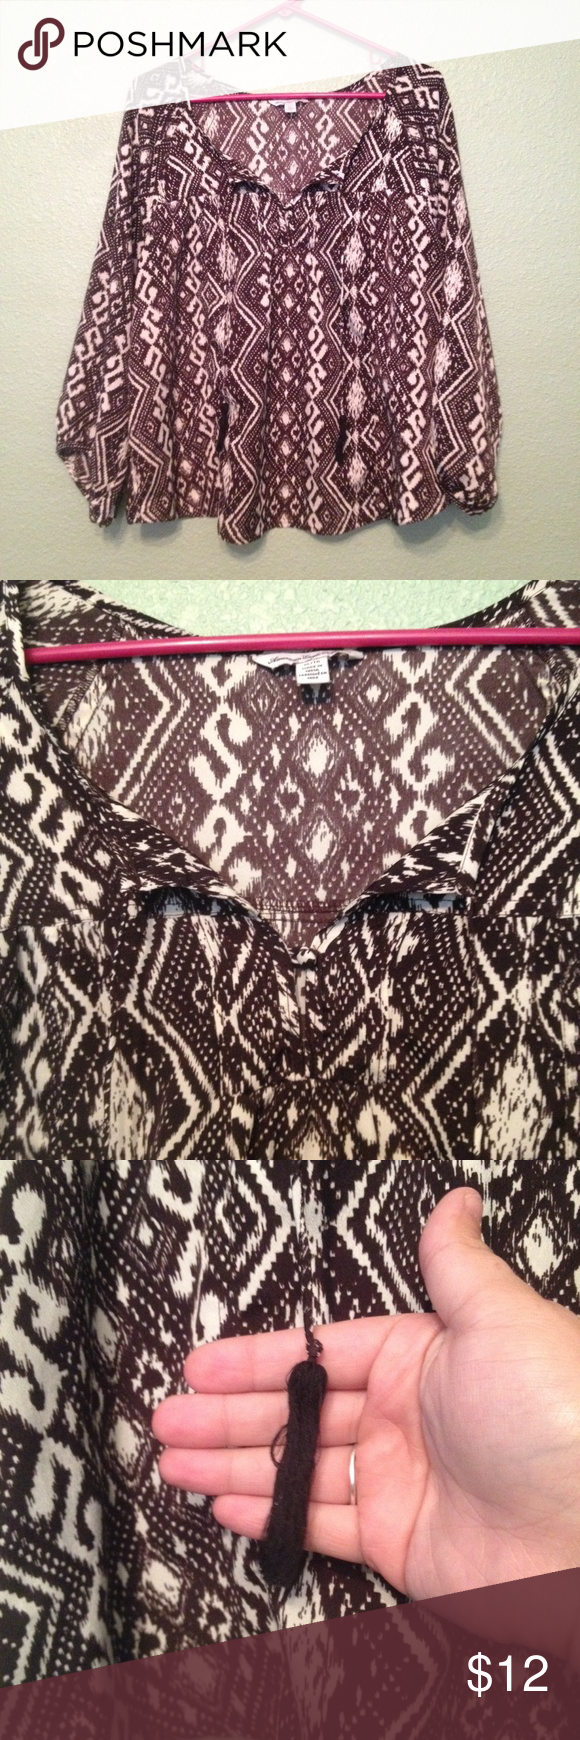 AEO Peasant Top with Split Back and Tassels Black and white ikat design. Split back as pictured. Open peasant neckline with tassels. Flared sleeves! Perfect to pair with a utility vest or on it's own! American Eagle Outfitters Tops Blouses